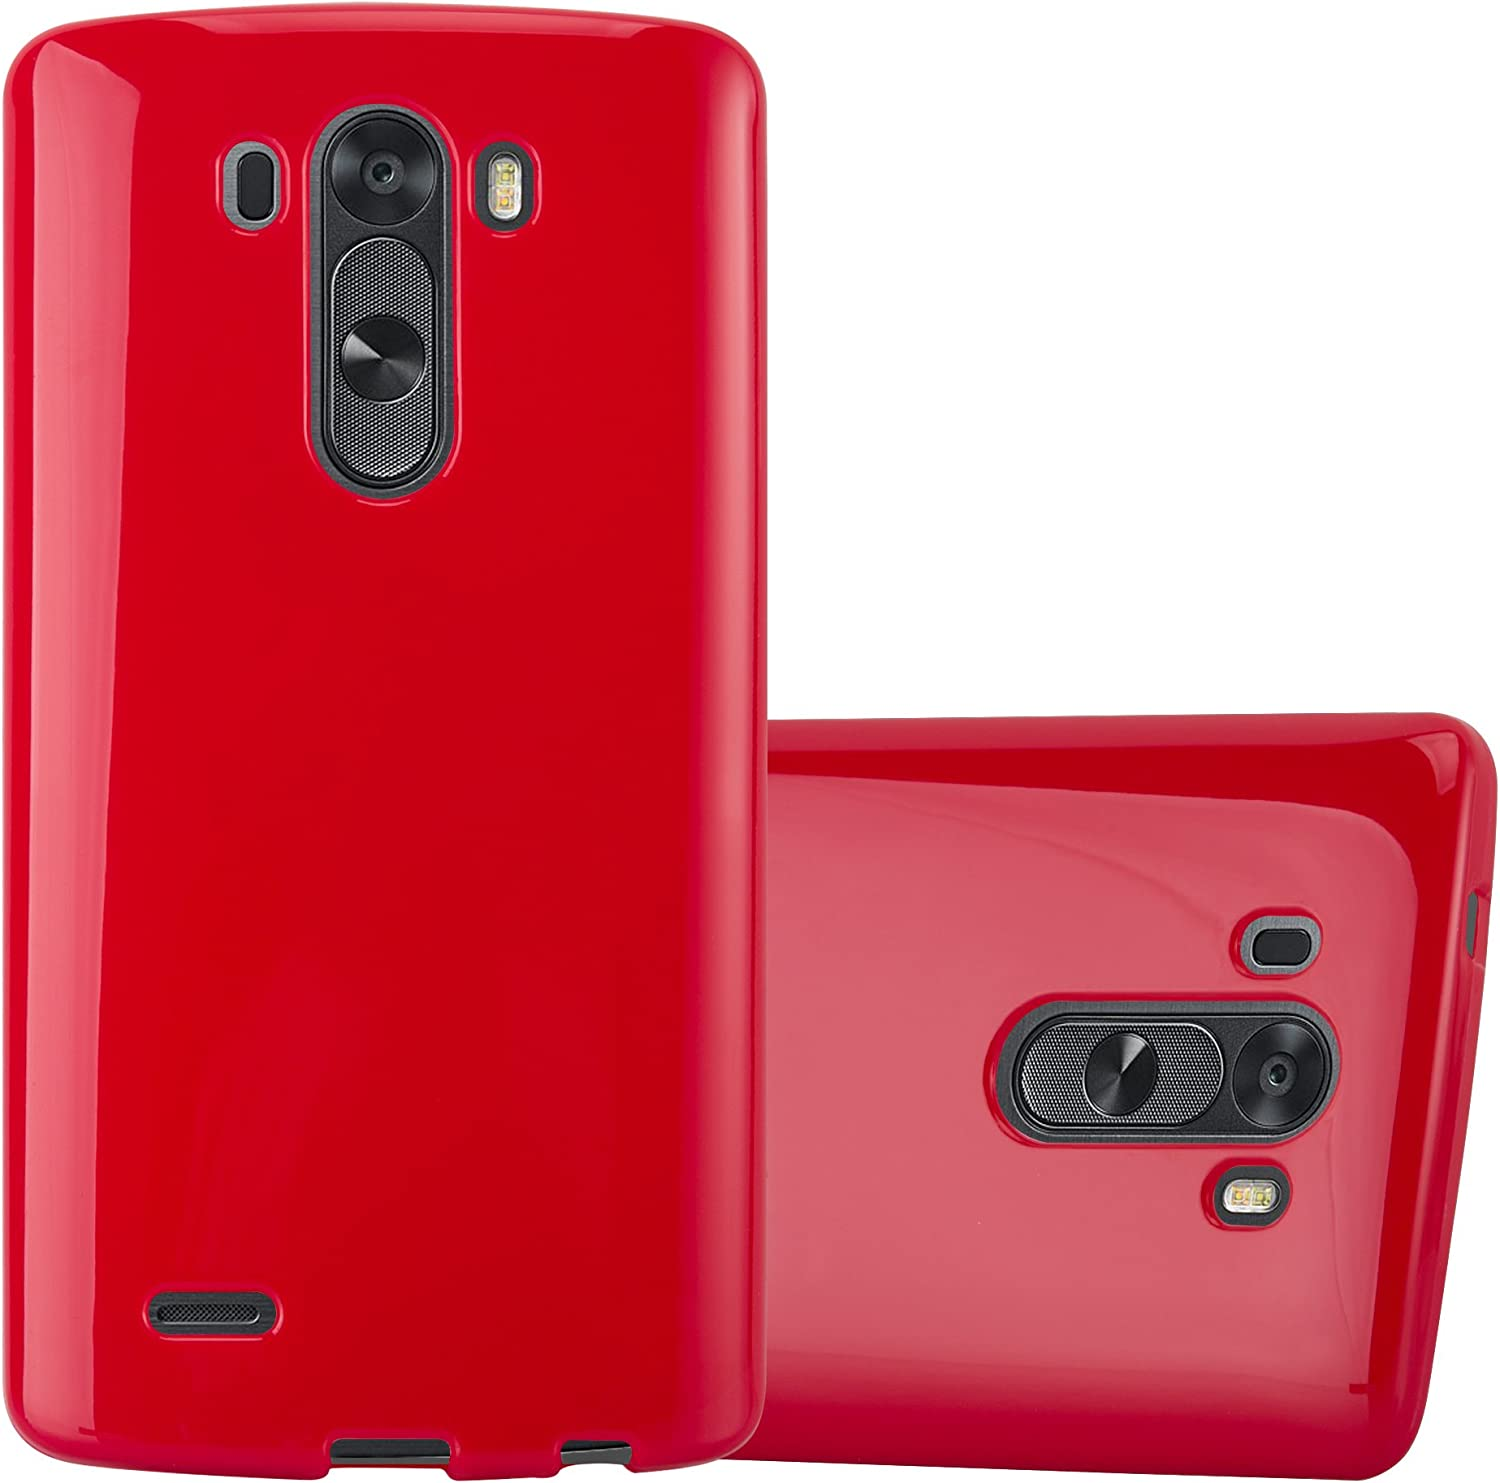 Cadorabo Case Compatible with LG G3 in Jelly RED - Shockproof and Scratch Resistant TPU Silicone Cover - Ultra Slim Protective Gel Shell Bumper Back Skin